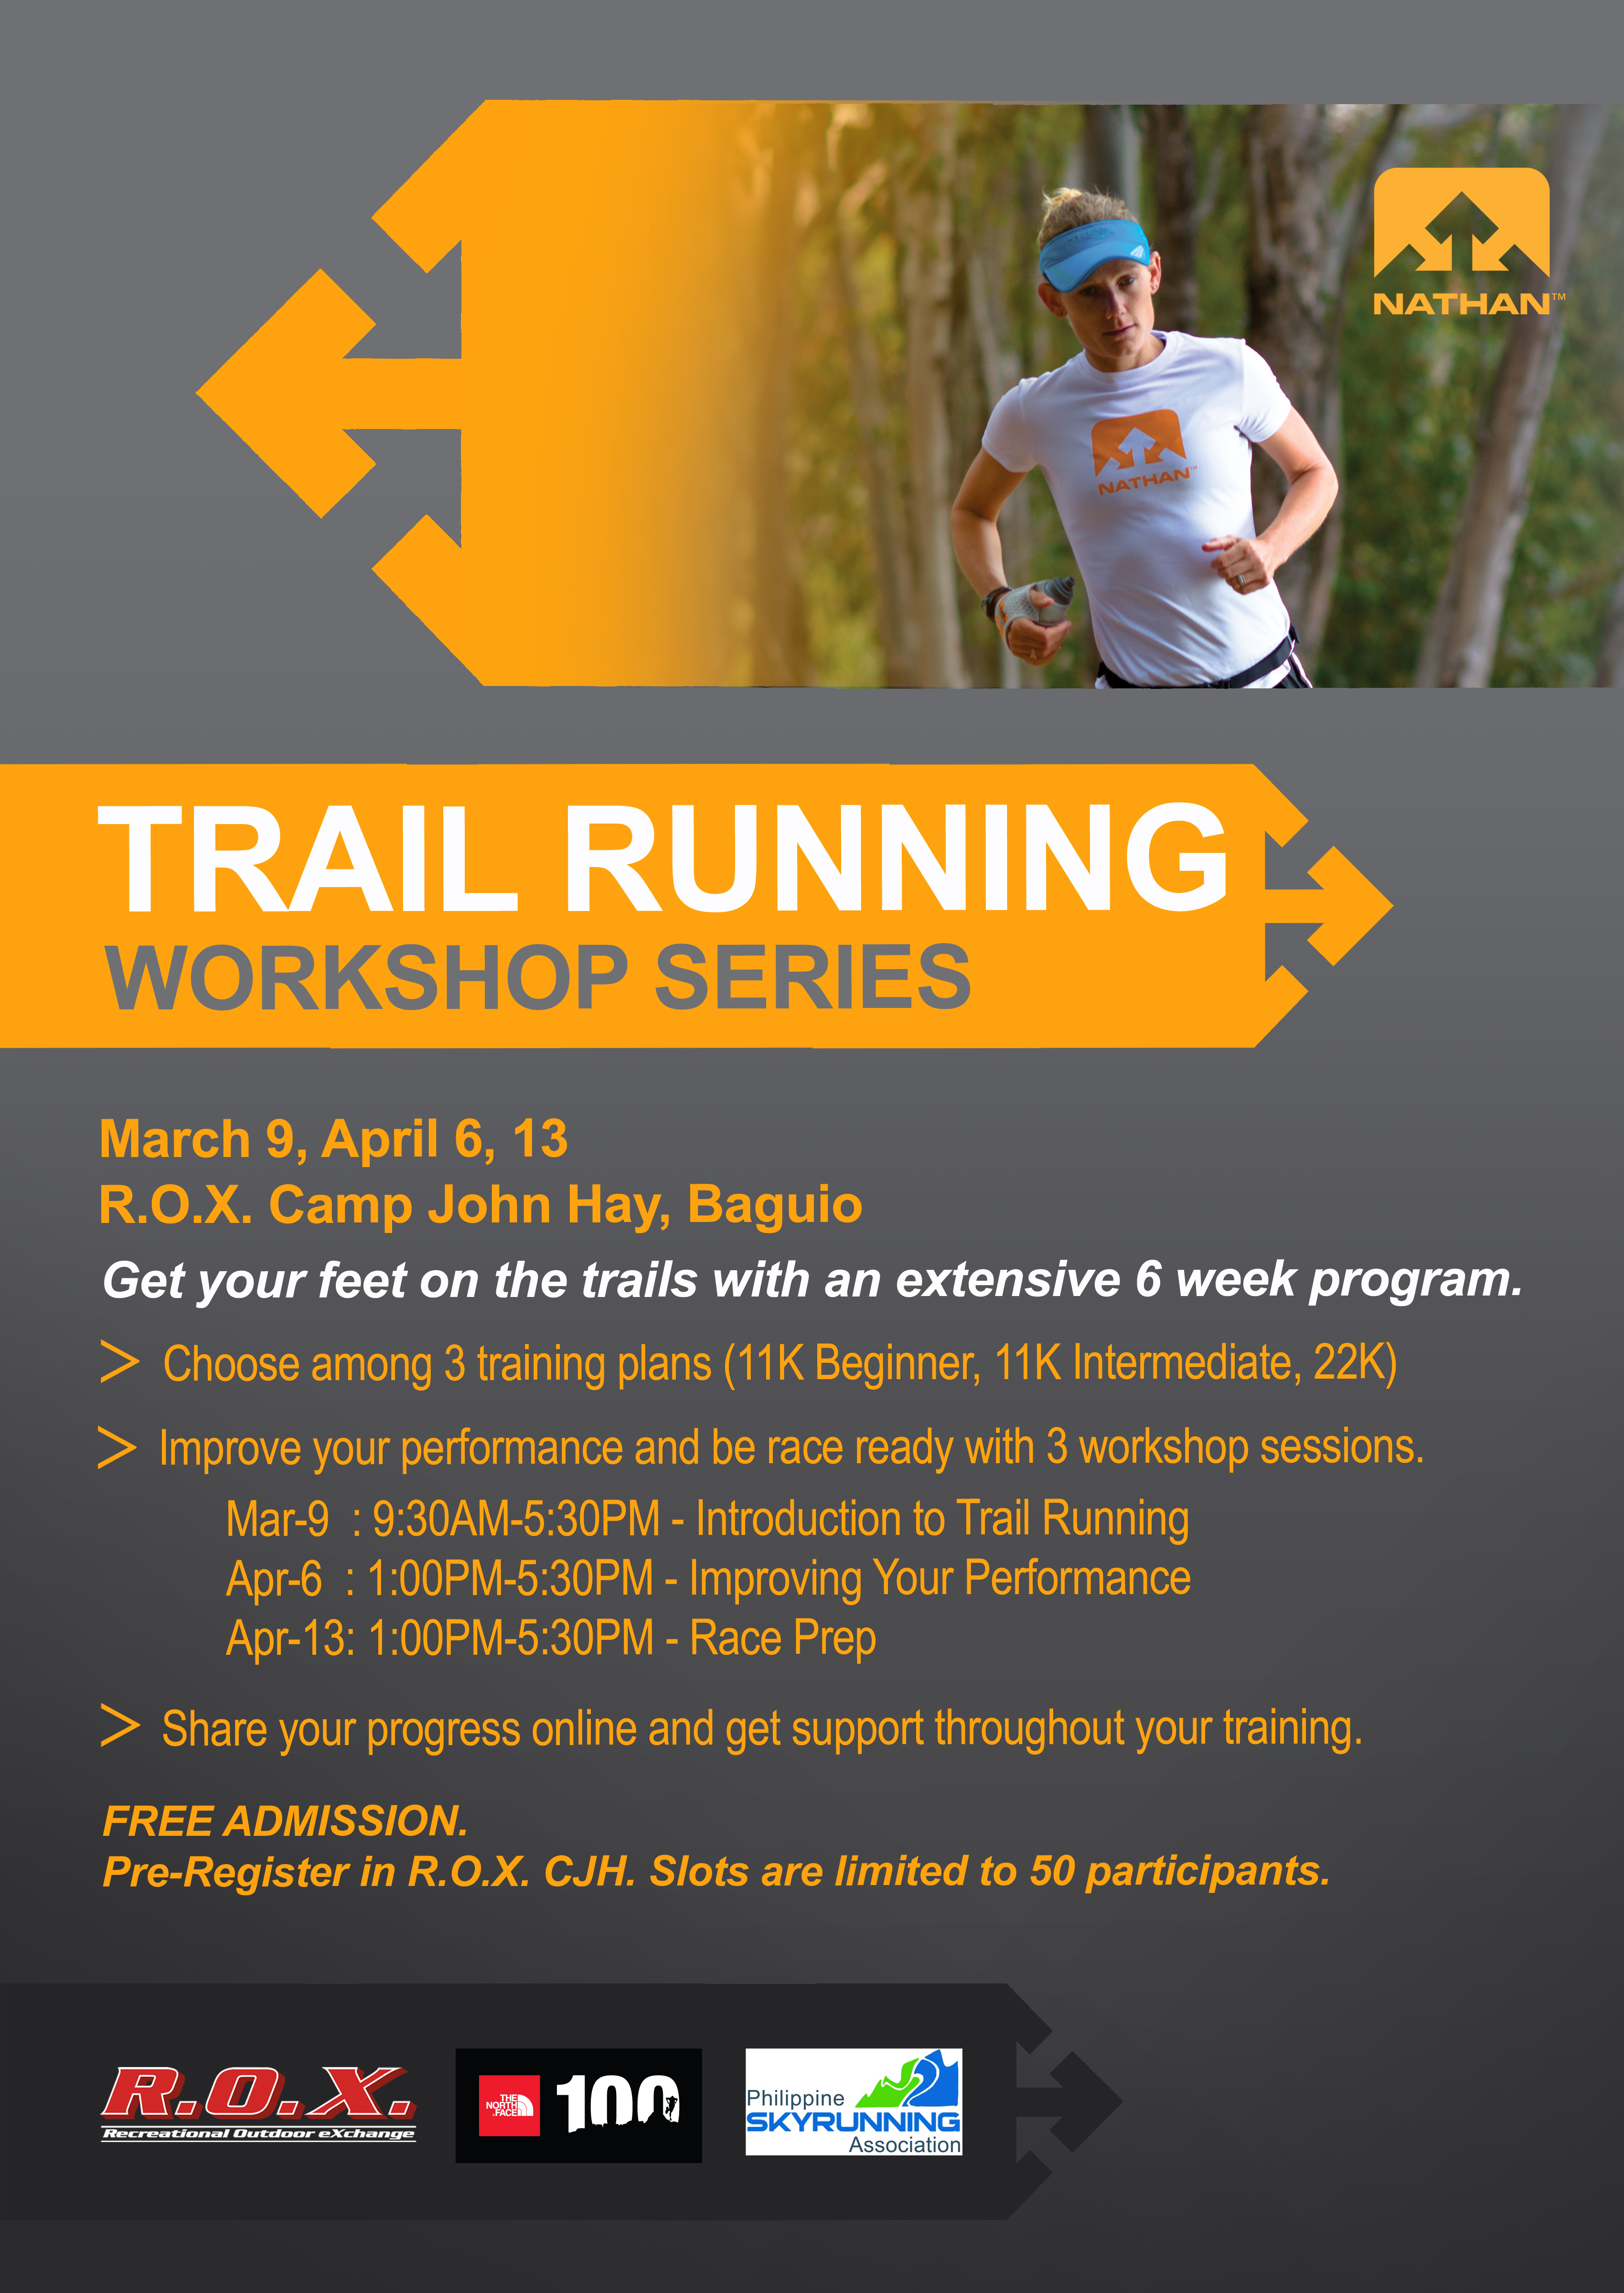 nathan-trail-running-workshop-2013-poster